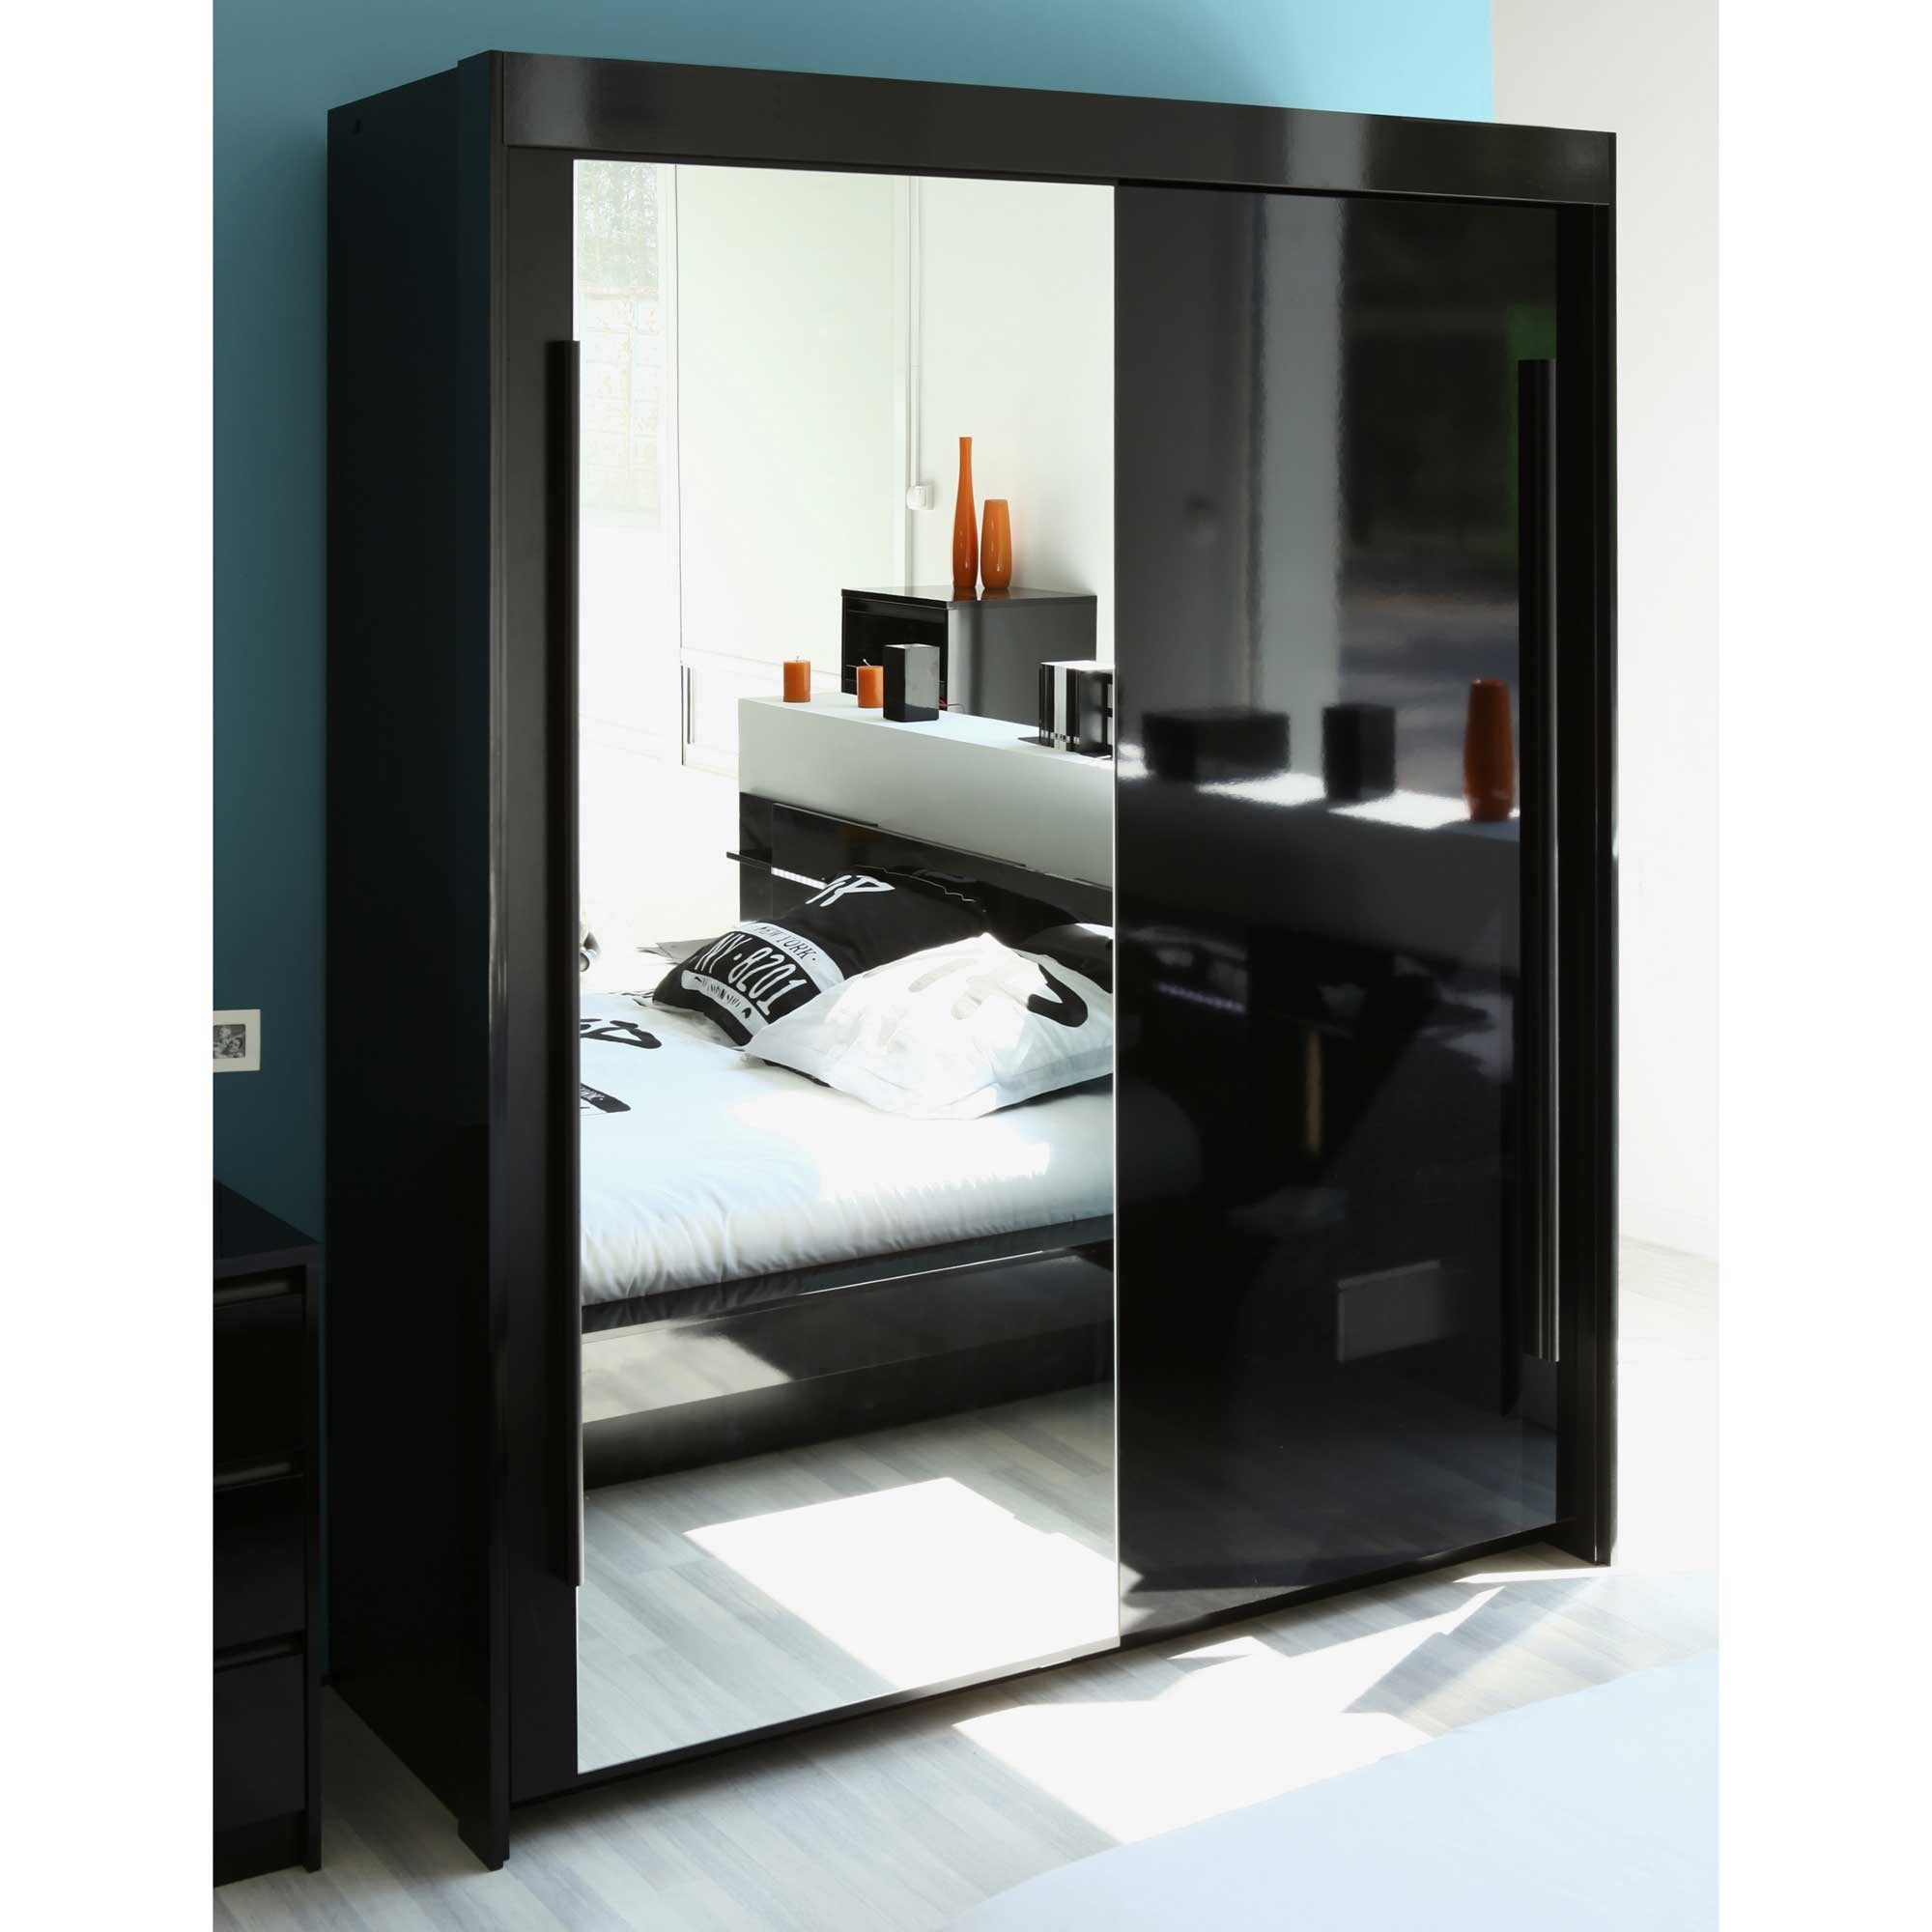 armoire avec miroir chambre armoire id es de. Black Bedroom Furniture Sets. Home Design Ideas